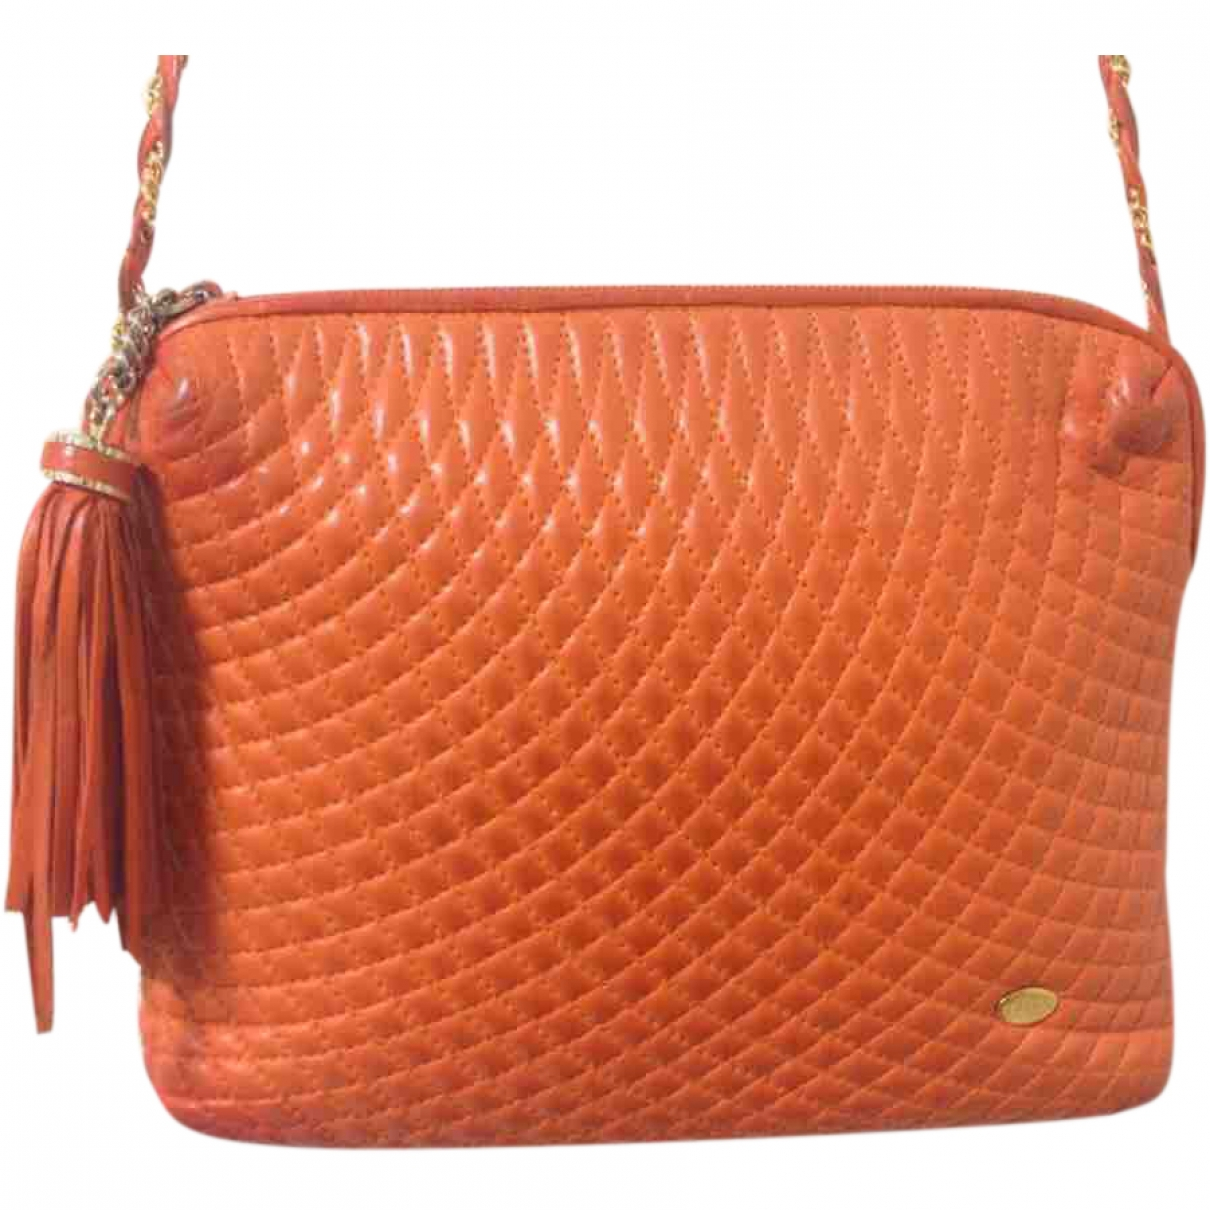 Bally \N Orange Leather handbag for Women \N